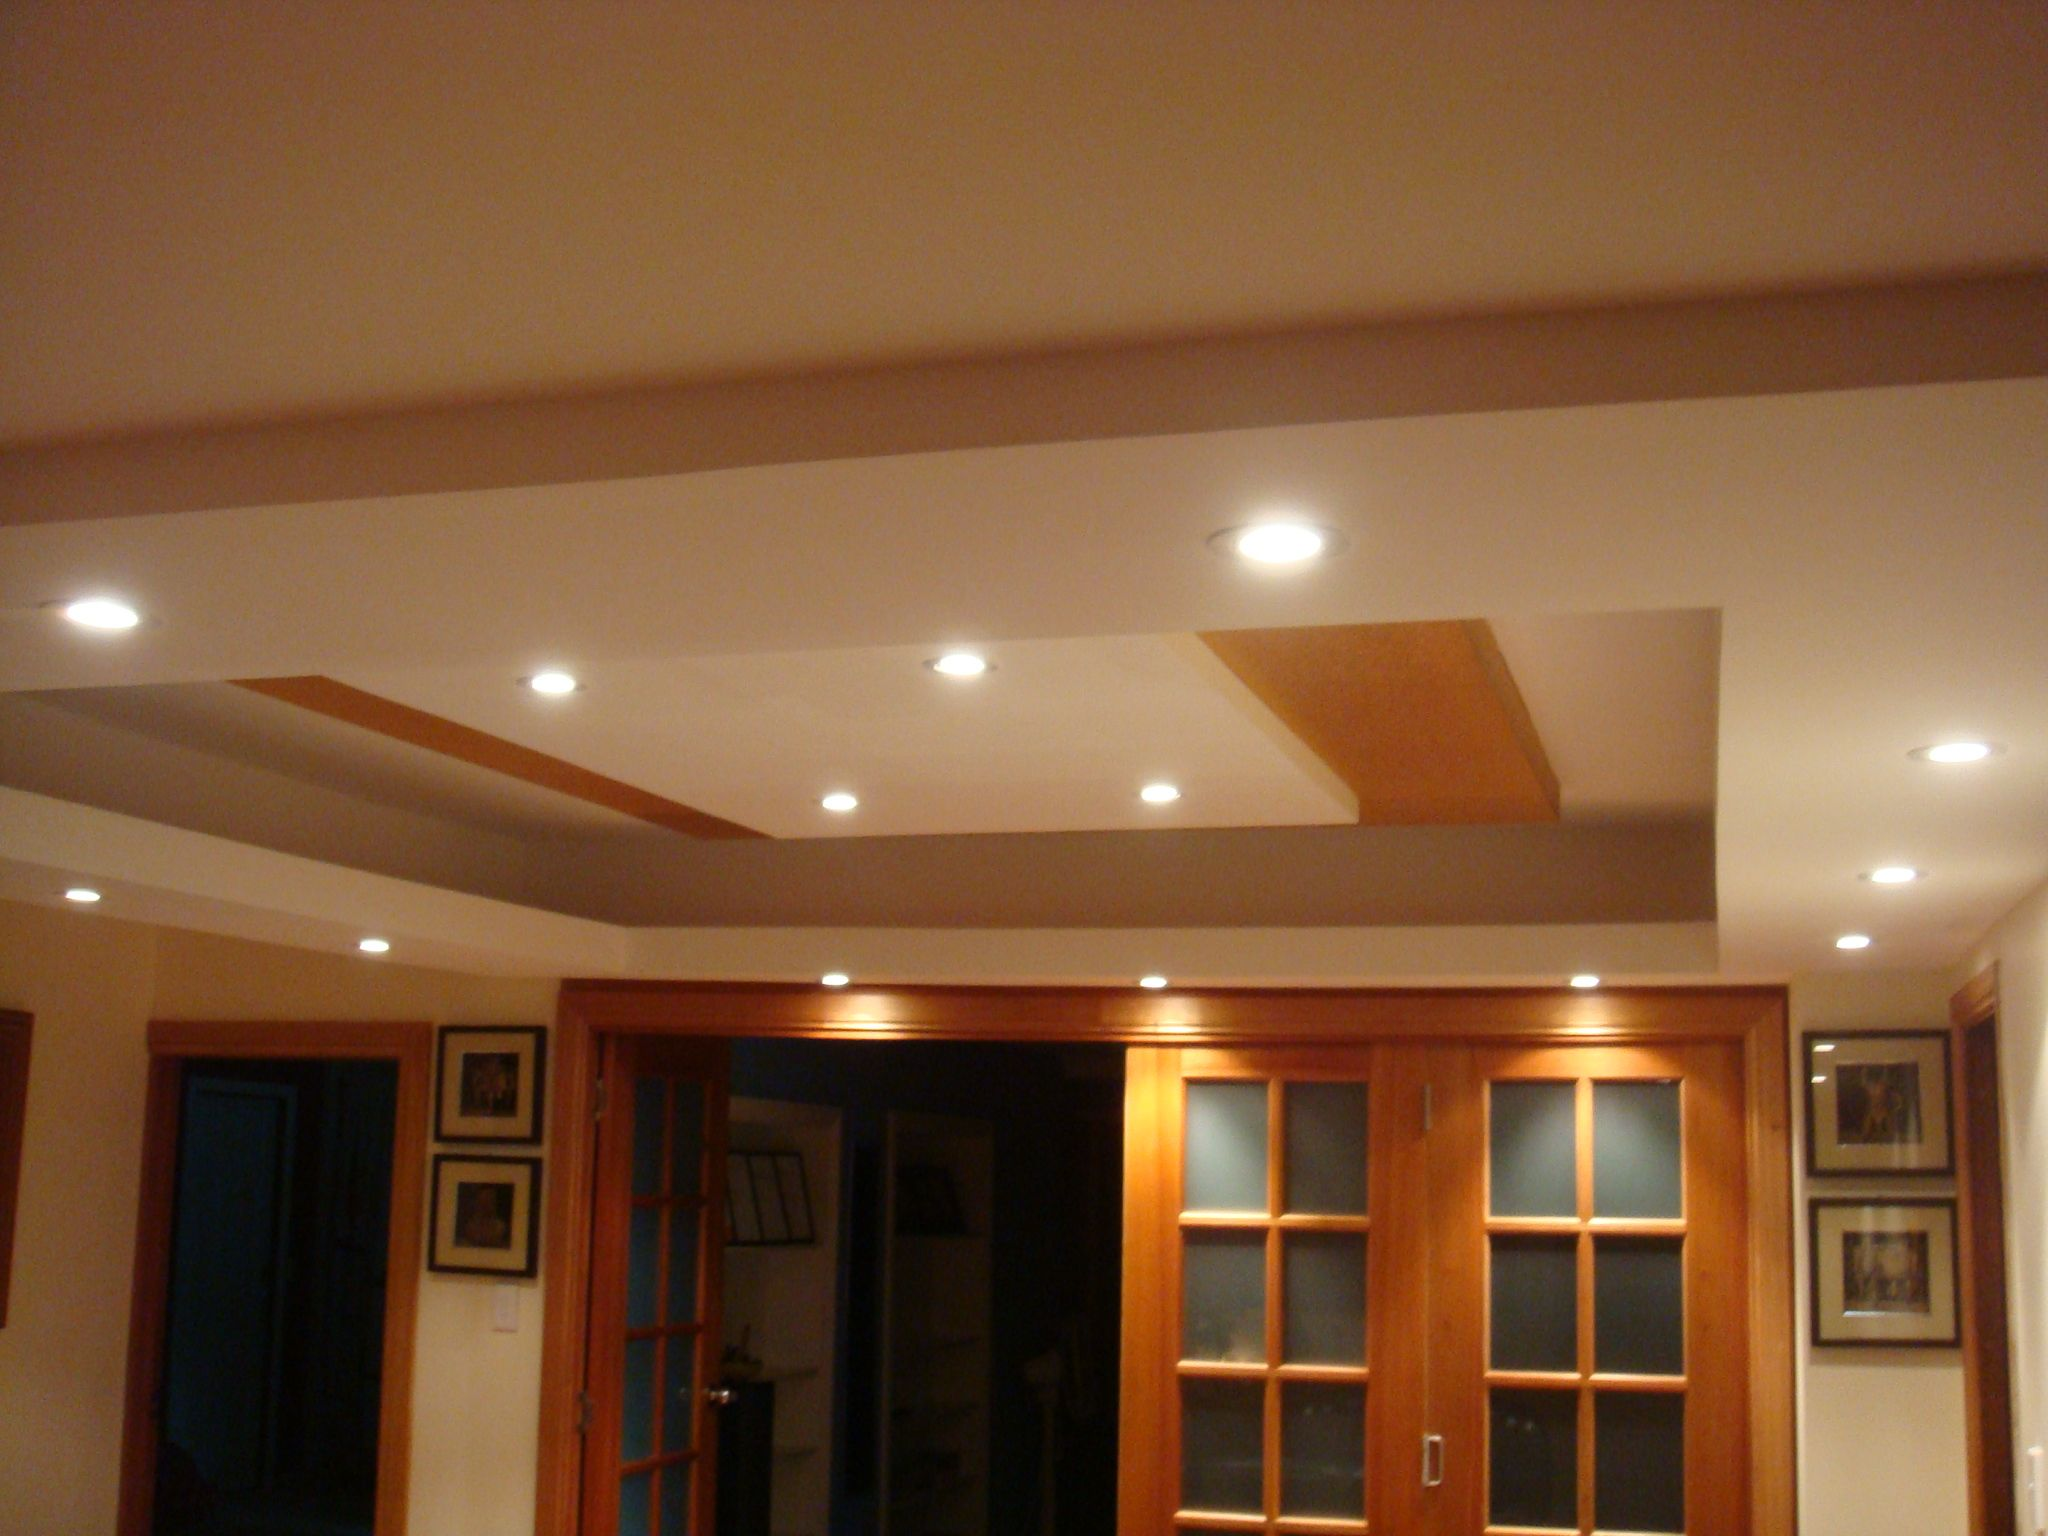 Latest gypsum ceiling designs hall image vectronstudios for Living hall design ideas